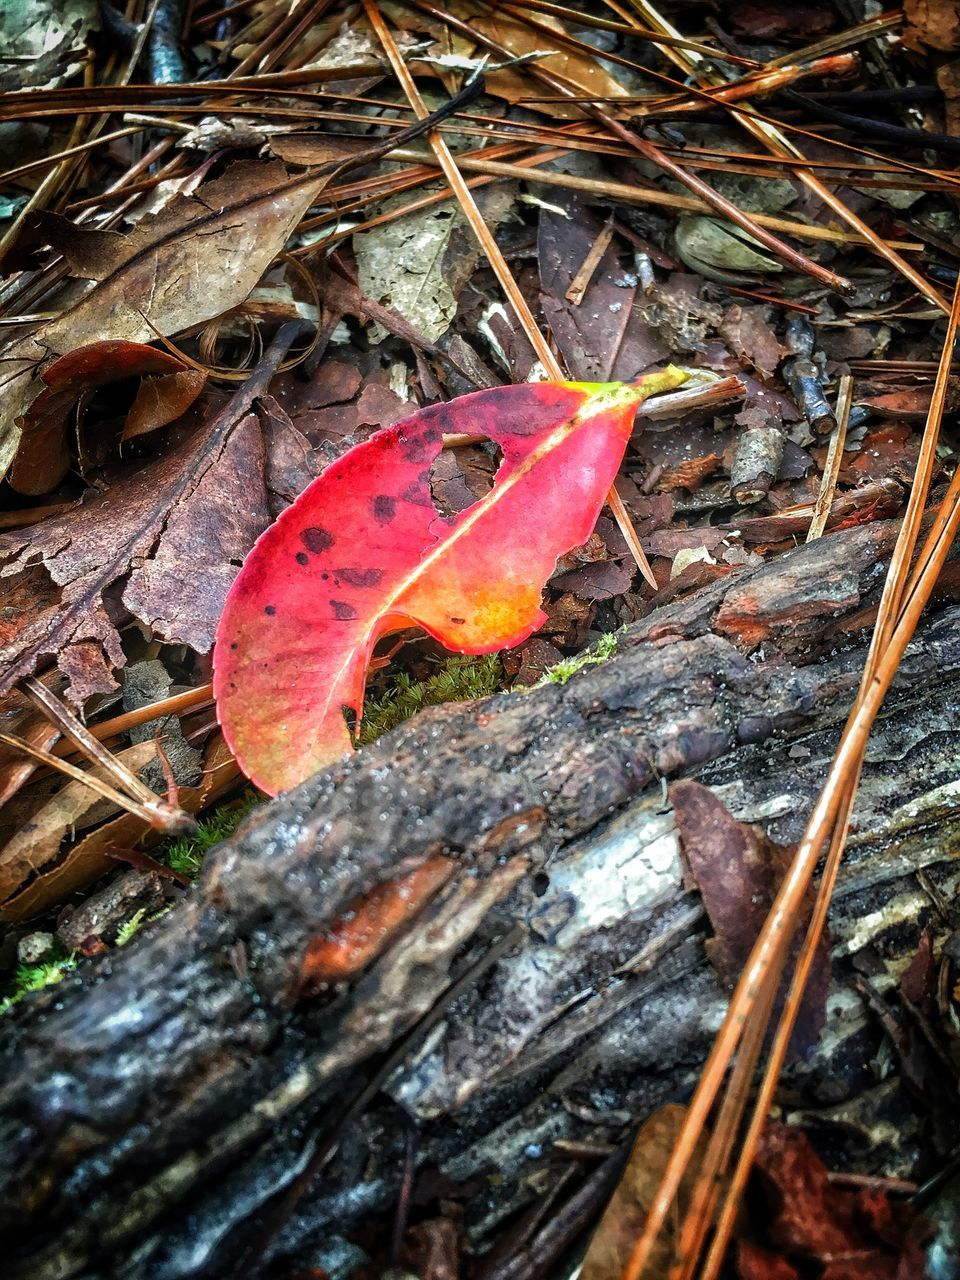 leaf, change, autumn, dry, nature, day, outdoors, no people, beauty in nature, maple leaf, red, close-up, maple, fragility